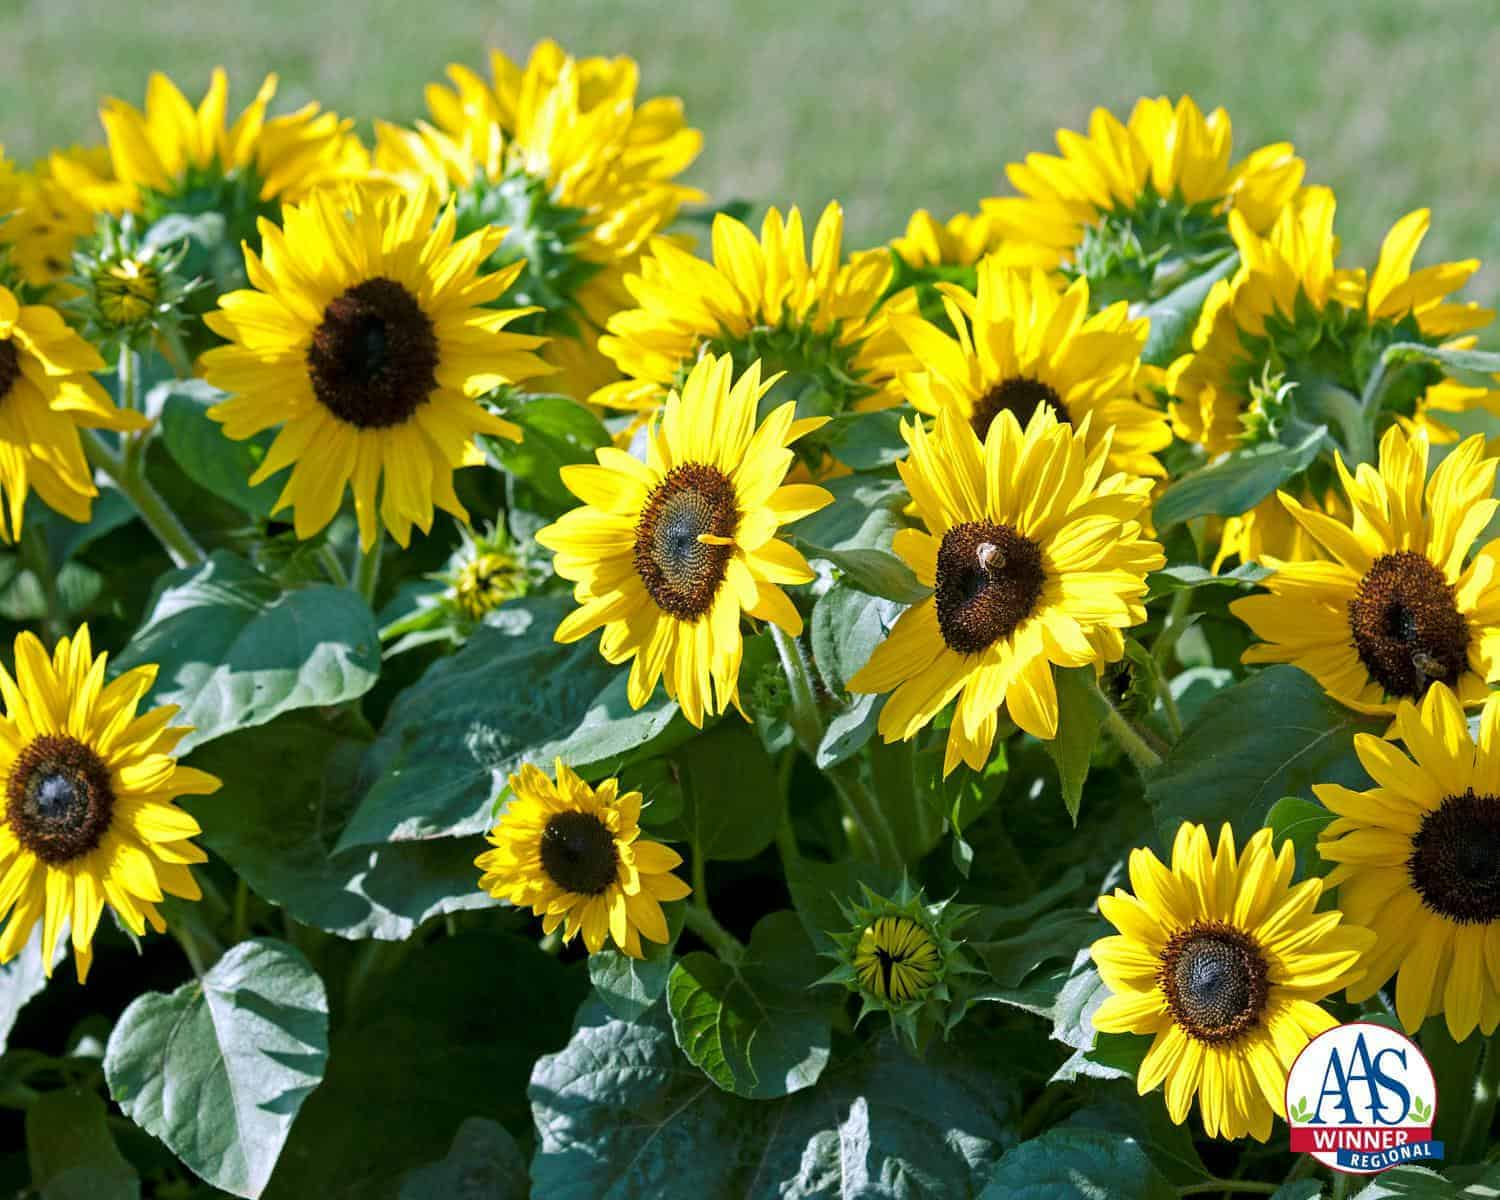 sun flowers and flower - photo #29